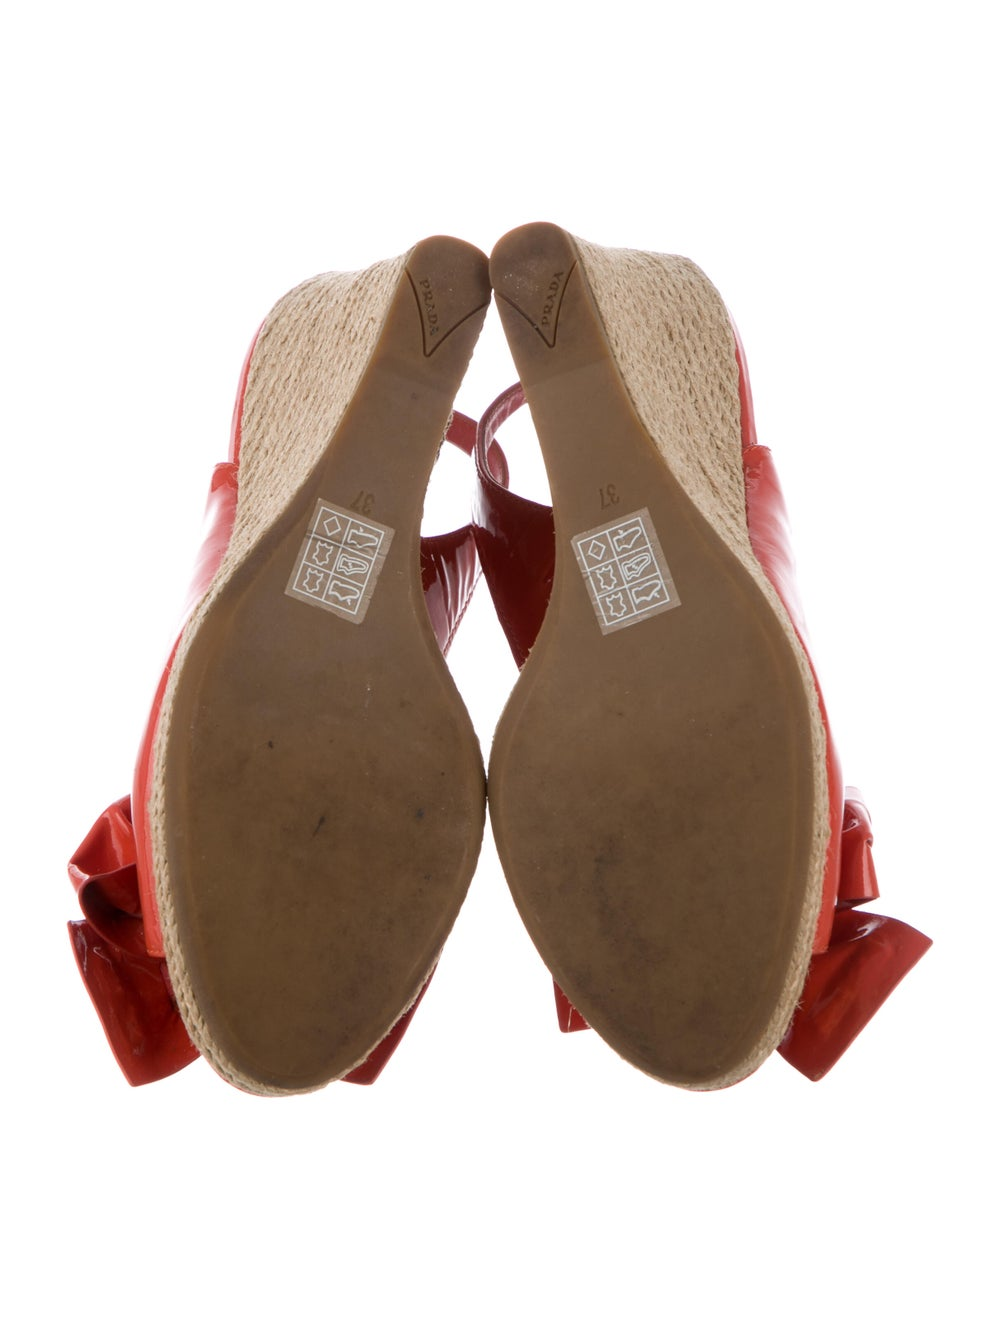 Prada Sport Patent Leather Bow Accents Espadrille… - image 5